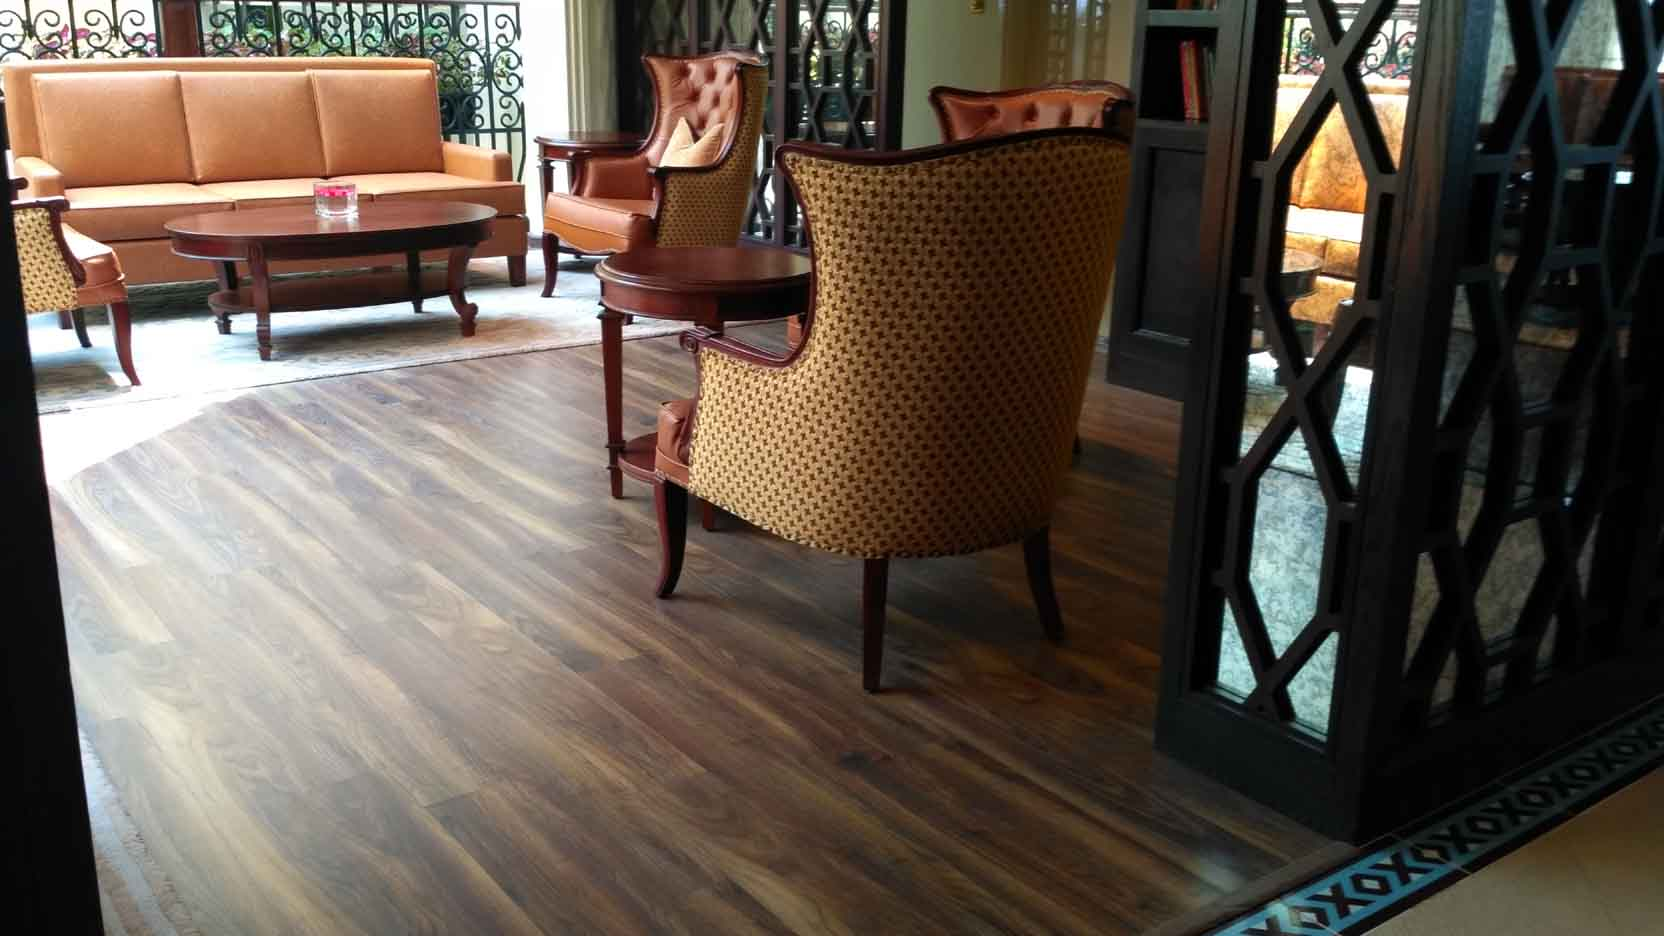 This Model Of Ibis Laminated Flooring Goes With All Kind Furnitures Its Good For People Who Have